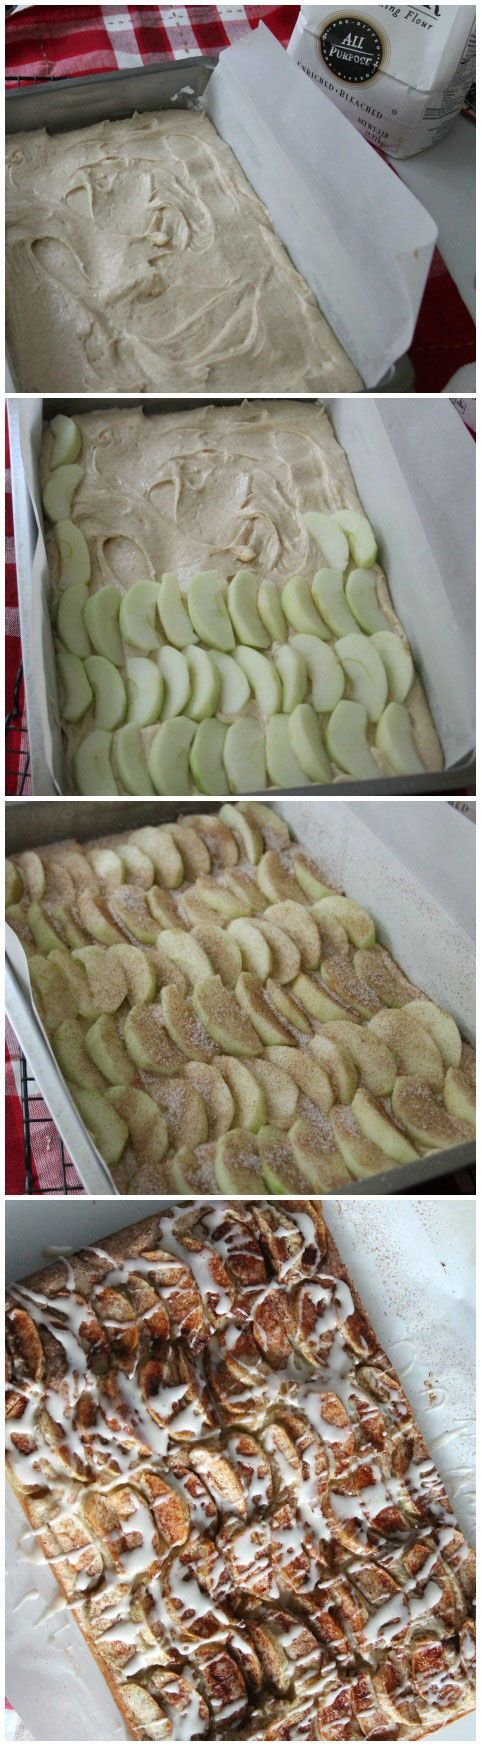 Apple Cake, also known as an Apple Kuchen, simple vanilla cake, topped with sliced apples and a cinnamon sugar mixture. Makes a great presentation for any occasion!